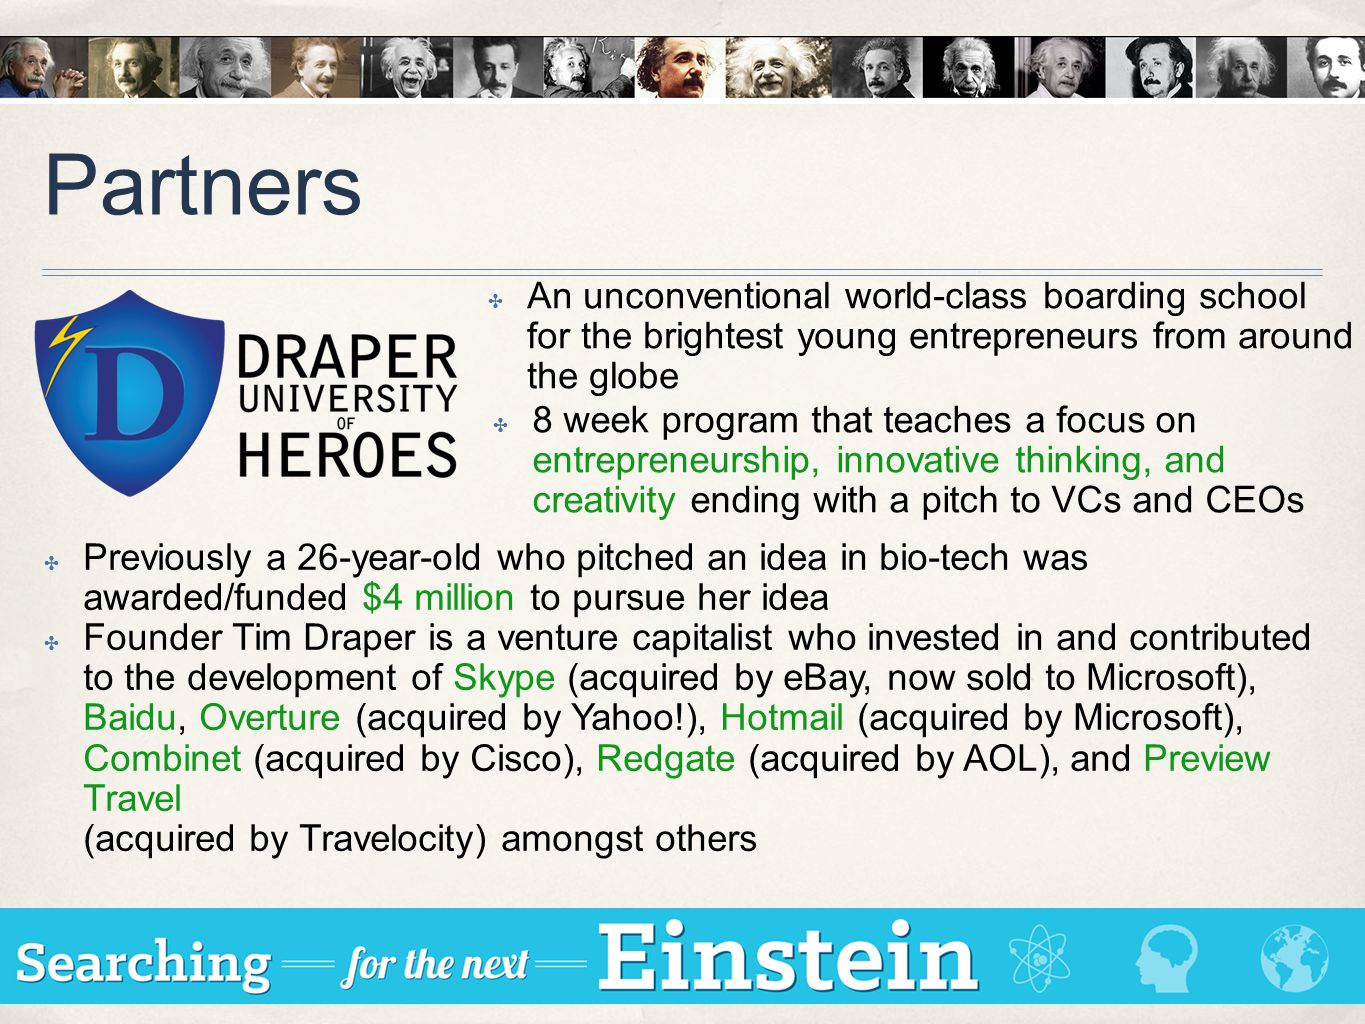 Partners ✤ 8 week program that teaches a focus on entrepreneurship, innovative thinking, and creativity ending with a pitch to VCs and CEOs ✤ Previously a 26-year-old who pitched an idea in bio-tech was awarded/funded $4 million to pursue her idea ✤ Founder Tim Draper is a venture capitalist who invested in and contributed to the development of Skype (acquired by eBay, now sold to Microsoft), Baidu, Overture (acquired by Yahoo!), Hotmail (acquired by Microsoft), Combinet (acquired by Cisco), Redgate (acquired by AOL), and Preview Travel (acquired by Travelocity) amongst others ✤ An unconventional world-class boarding school for the brightest young entrepreneurs from around the globe